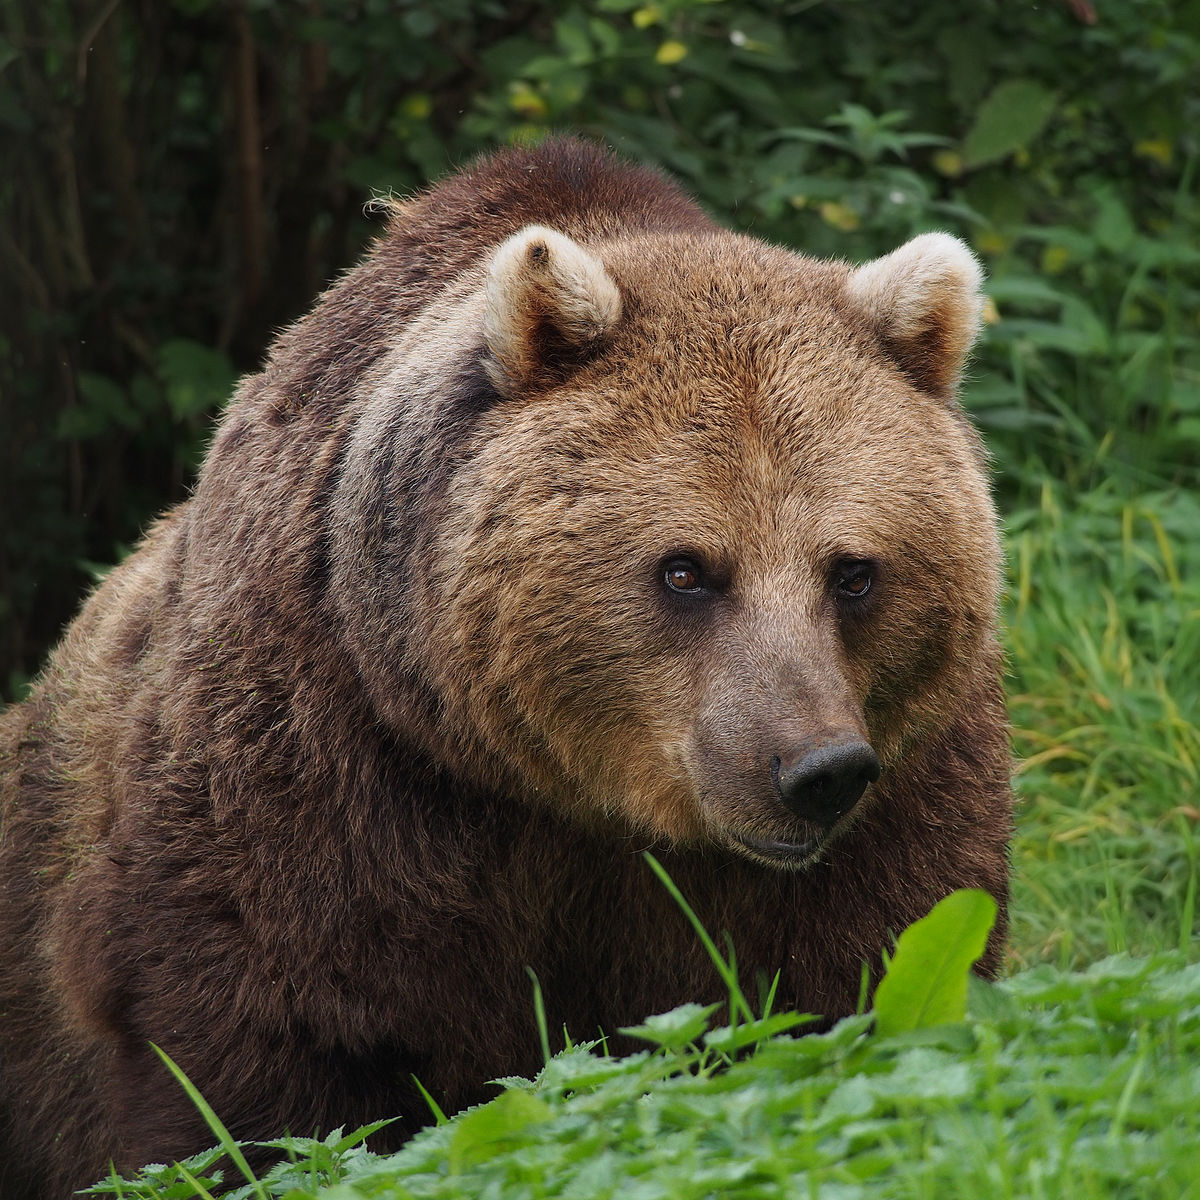 Eurasian brown bear - Wikipedia